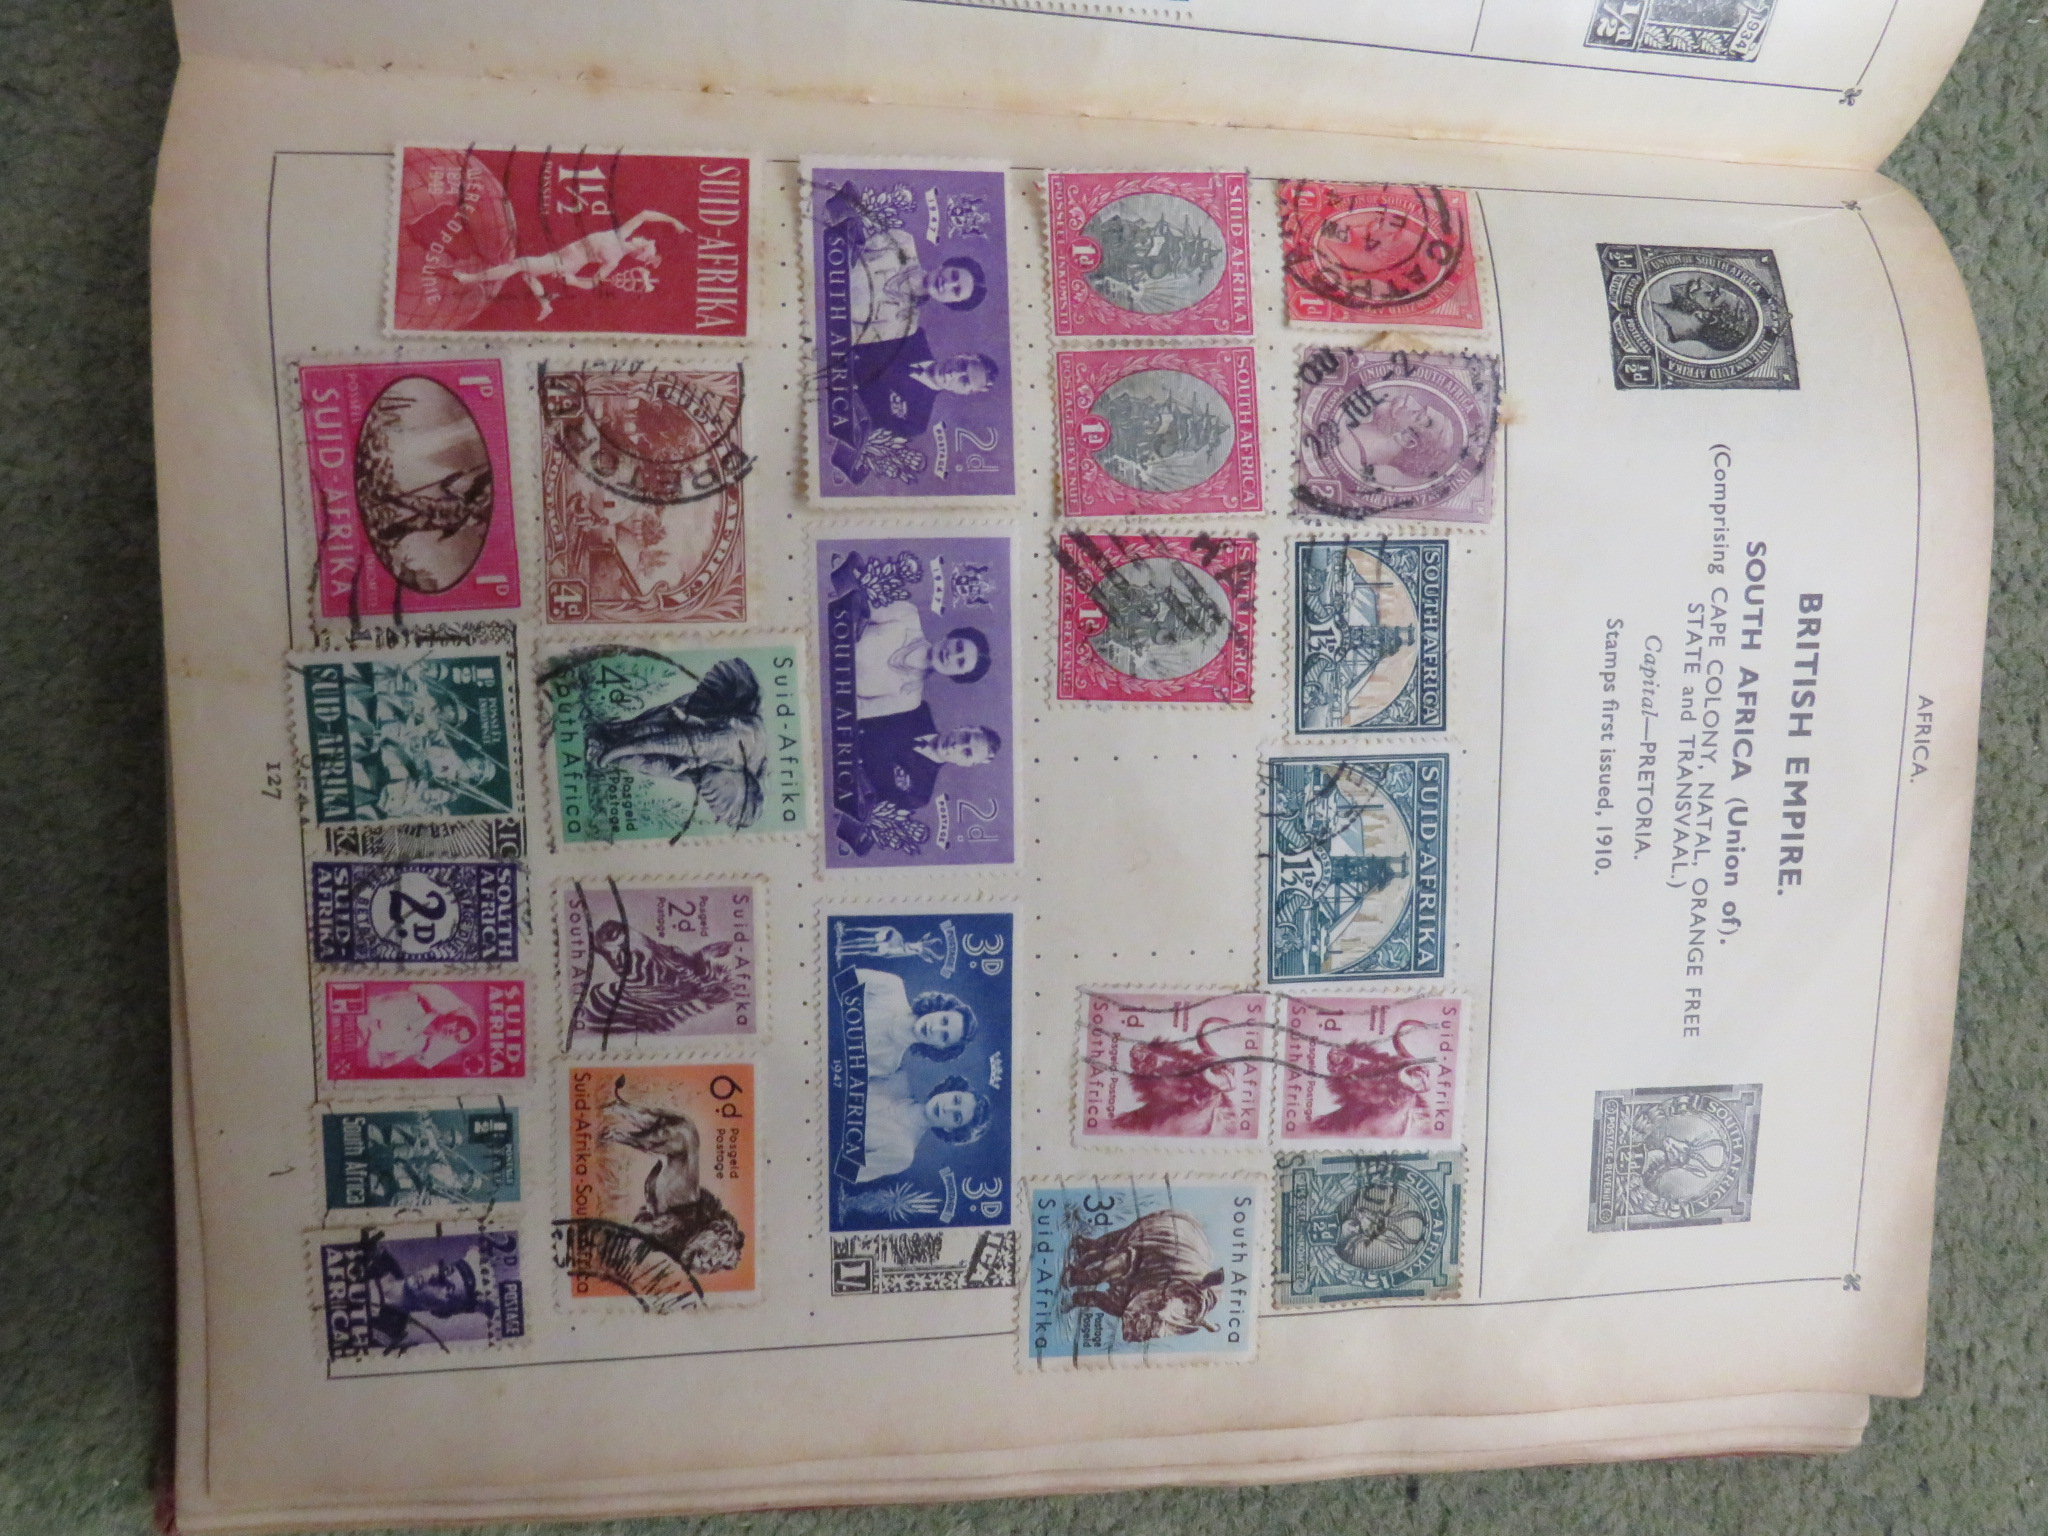 BLUE ZENITH STAMP ALBUM AND RED IMPROVED POSTAGE STAMP ALBUM WITH CONTENTS, TOGETHER WITH COVERS AND - Image 4 of 5